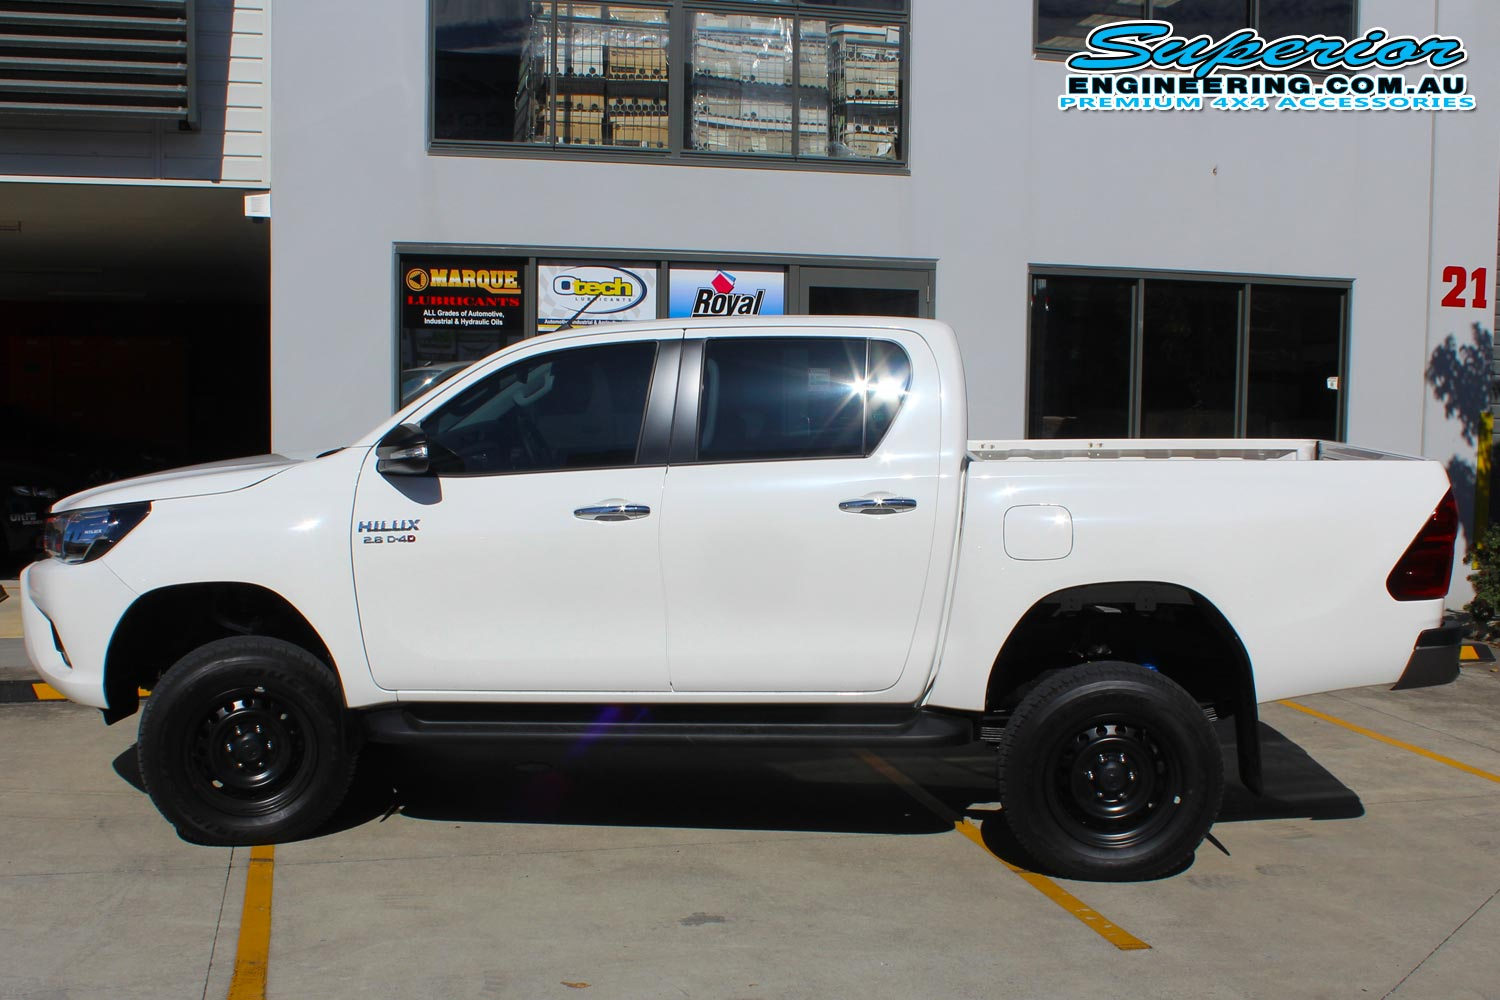 Left side view of a dual cab Toyota Hilux Revo fitted with a complete 3 inch Superior Nitro Gas lift kit